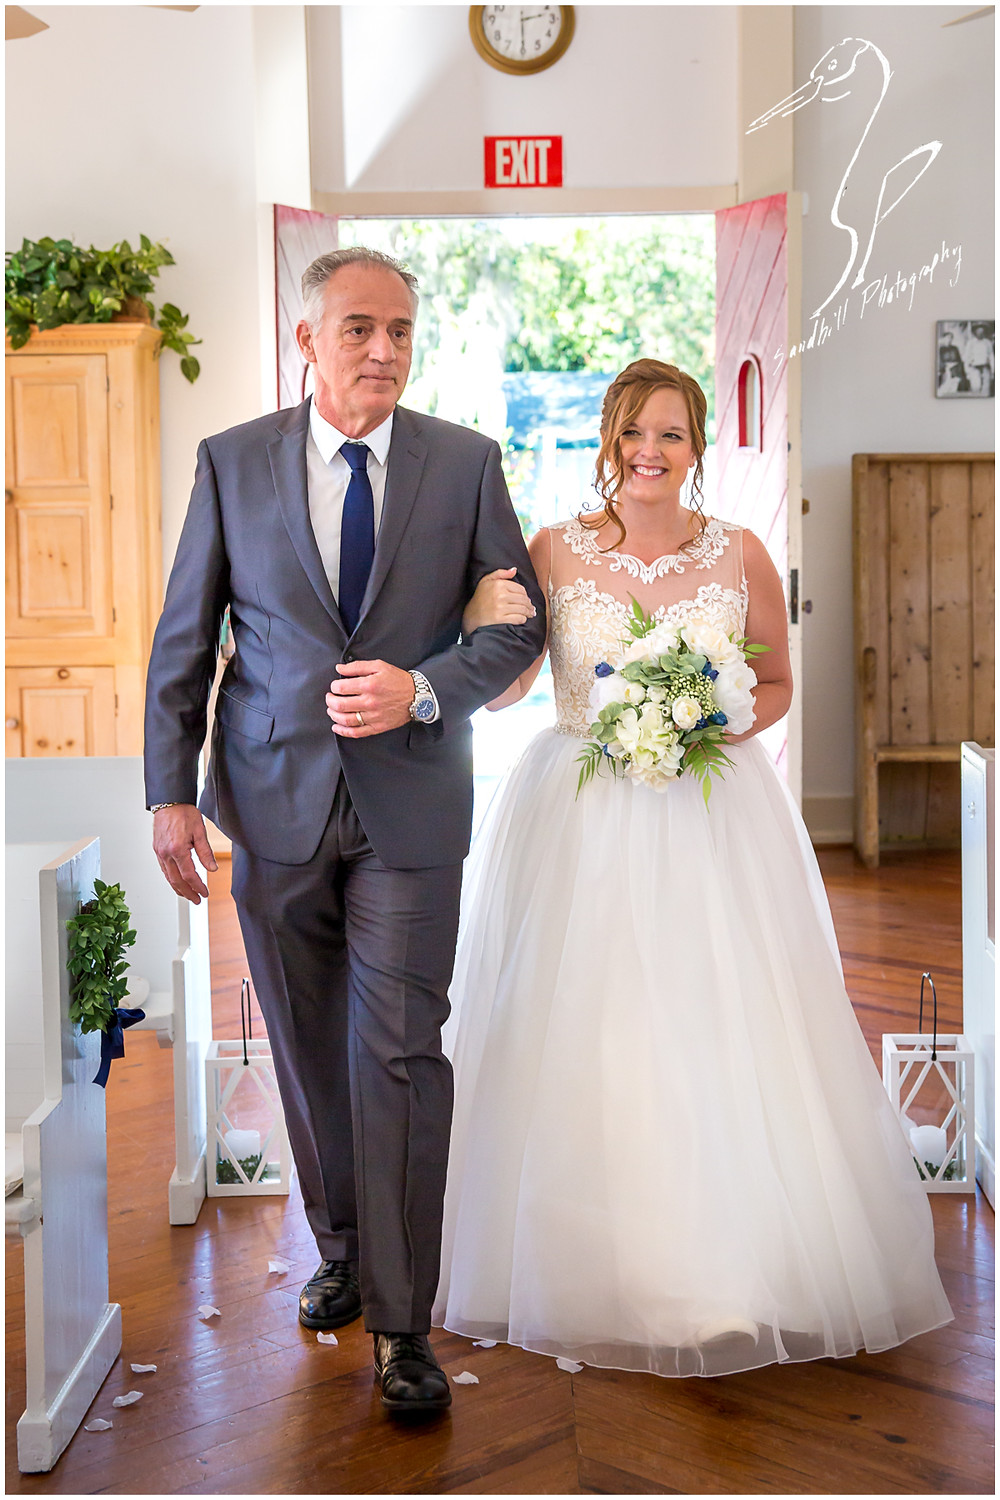 Sarasota Wedding Photography Crocker Memorial Church Portrait of the bride being walked down the isle by her father by Sandhill Photography